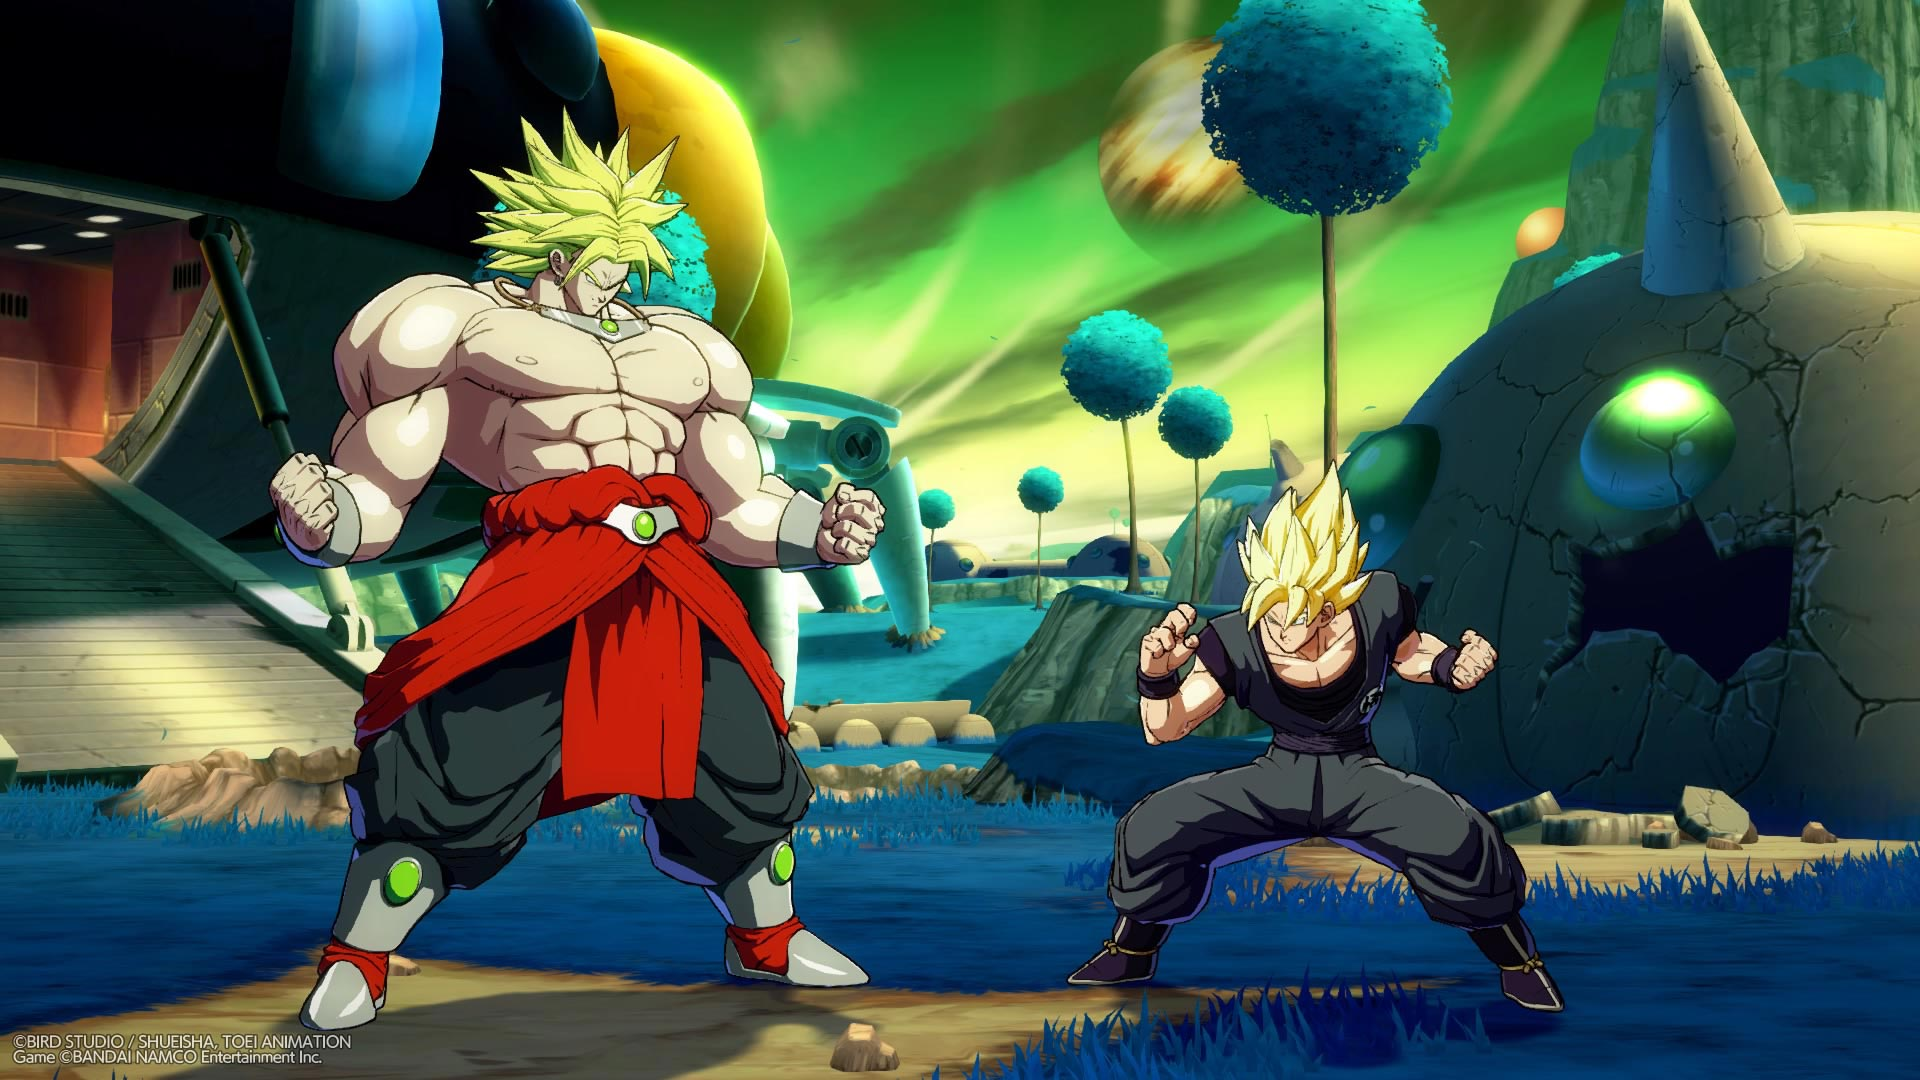 Broly and Bardock screenshots in Dragon Ball FighterZ 1 out of 12 image gallery